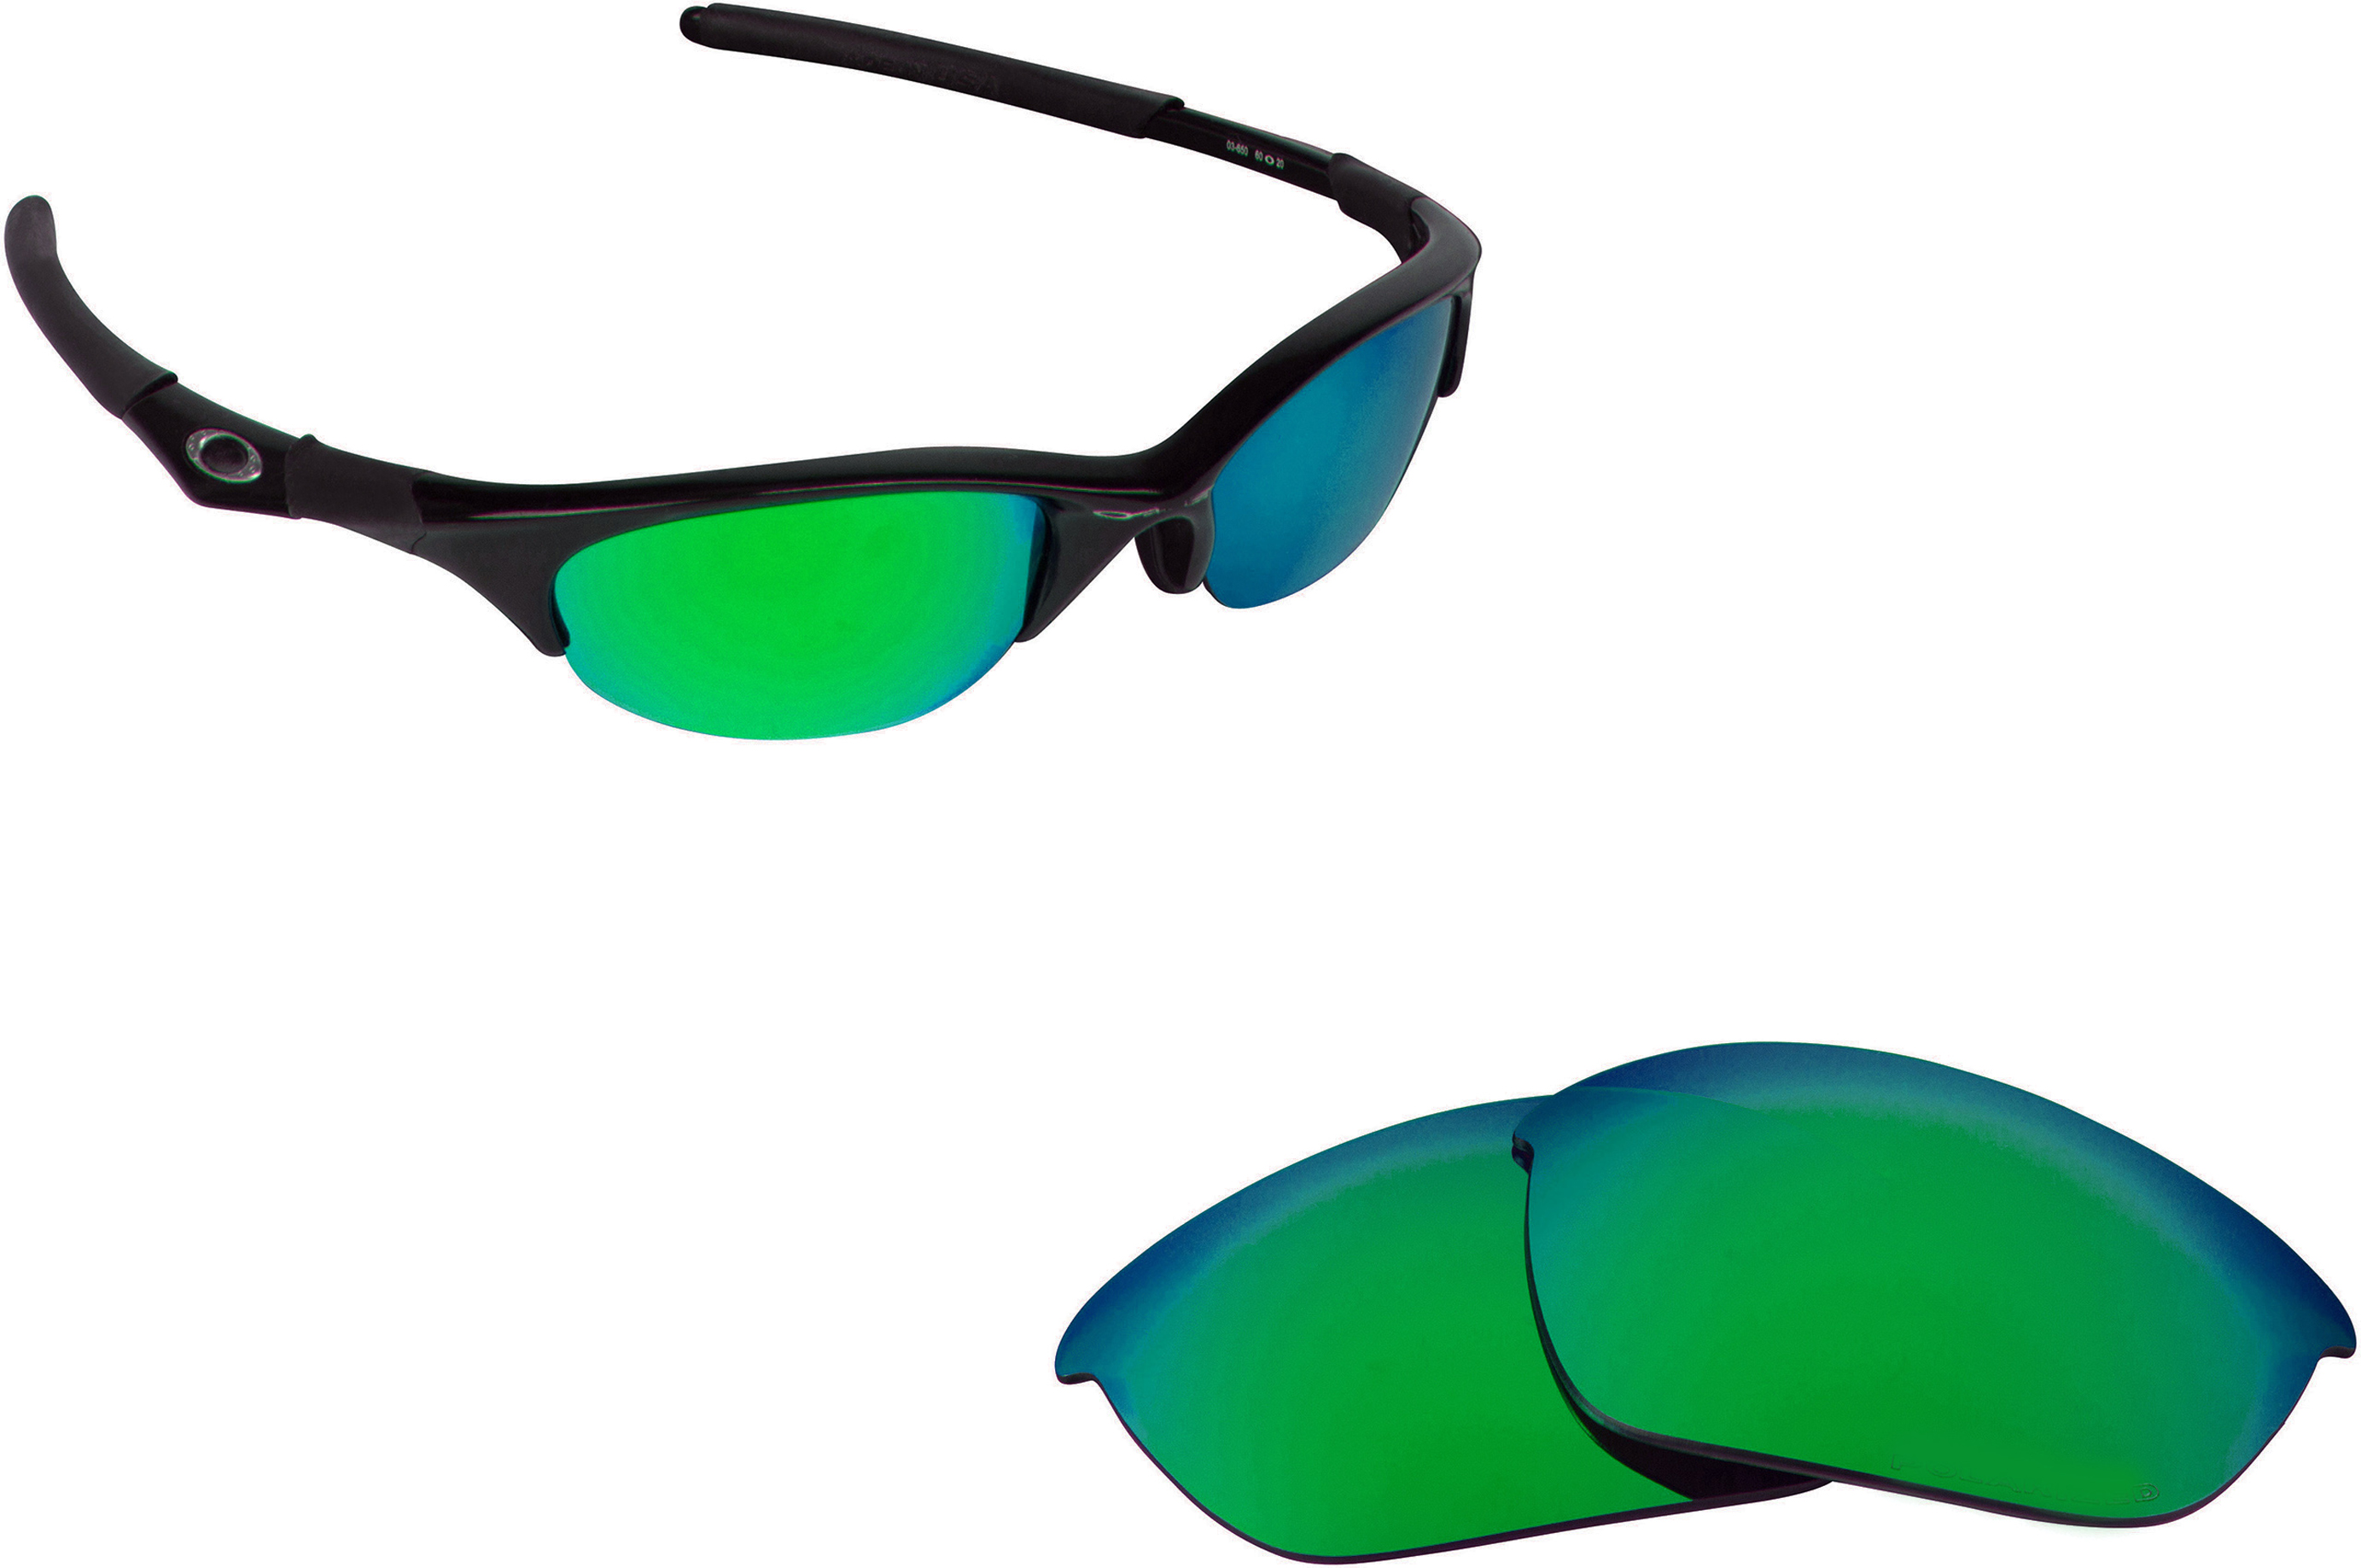 cea1d44686ad7 FLAK JACKET Replacement Lenses by SEEK OPTICS to fit OAKLEY ...